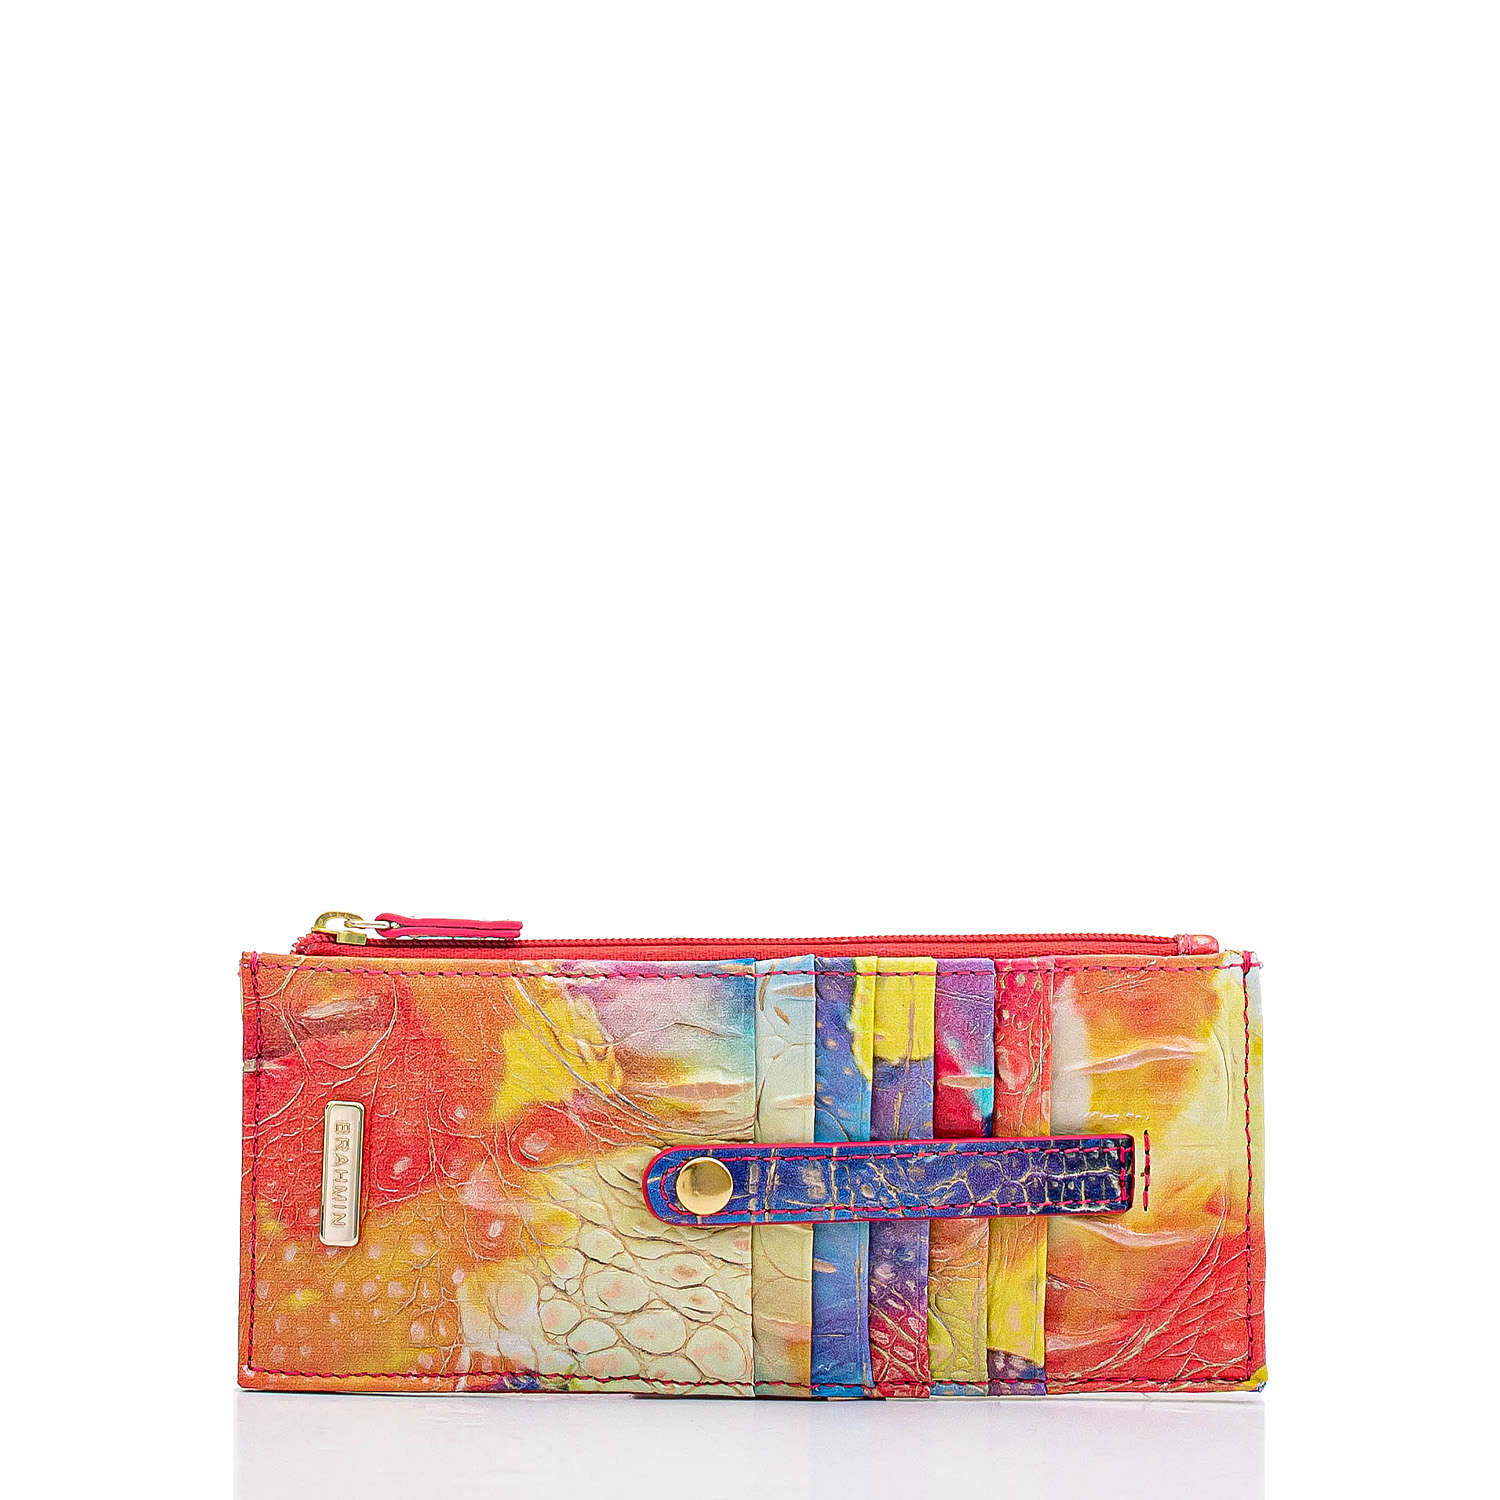 Credit Card Wallet Dandy Melbourne